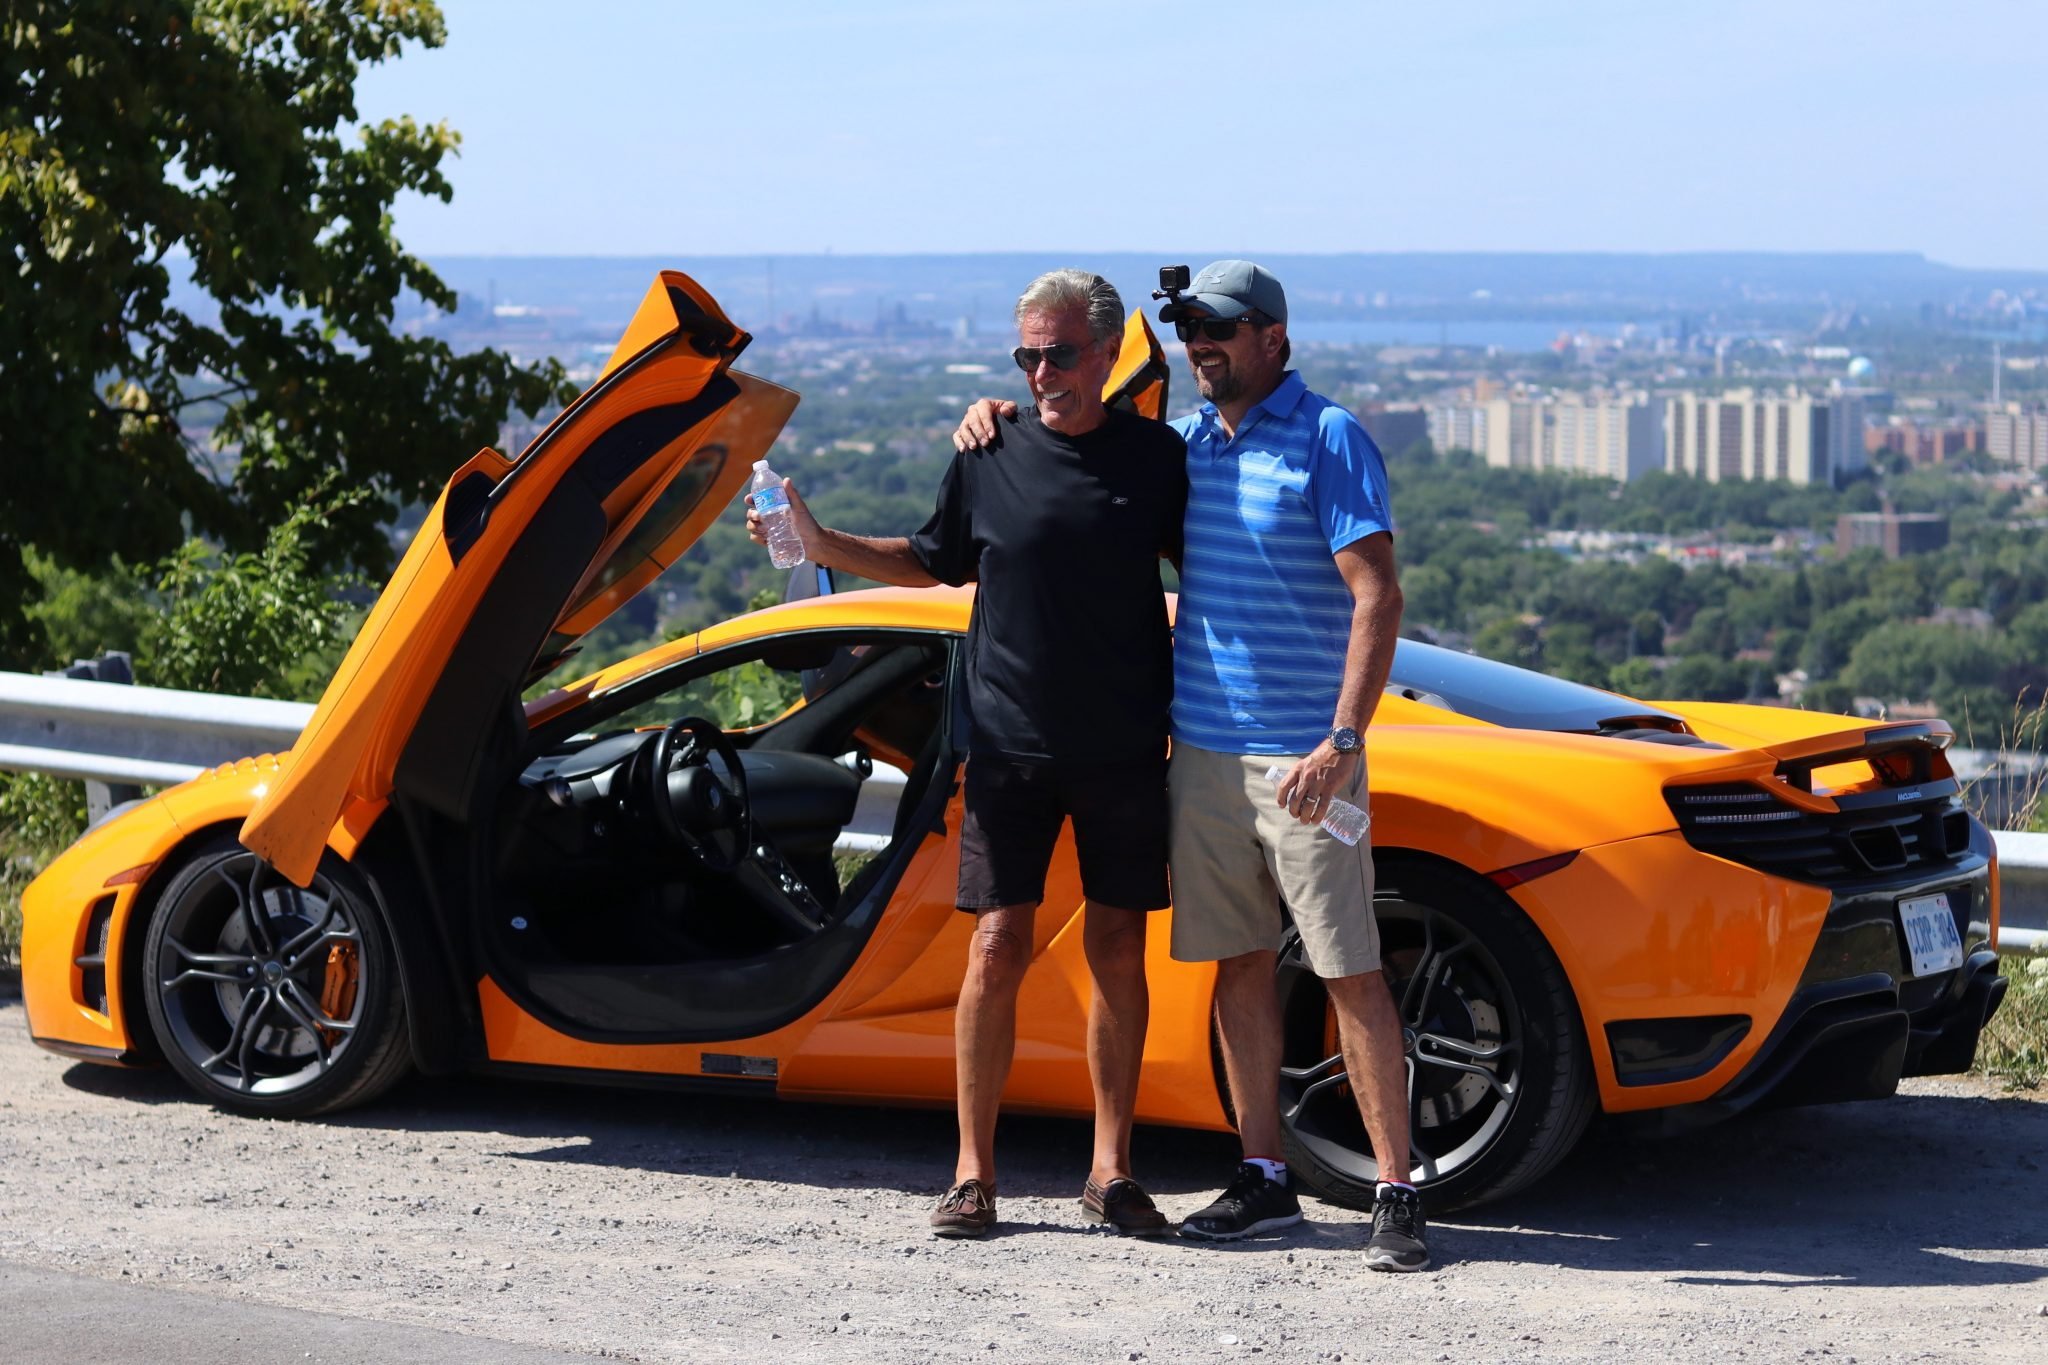 Gta Exotics Exotic Car Rentals Perfect Experience For Motivating Employees Clients Team Building Activity